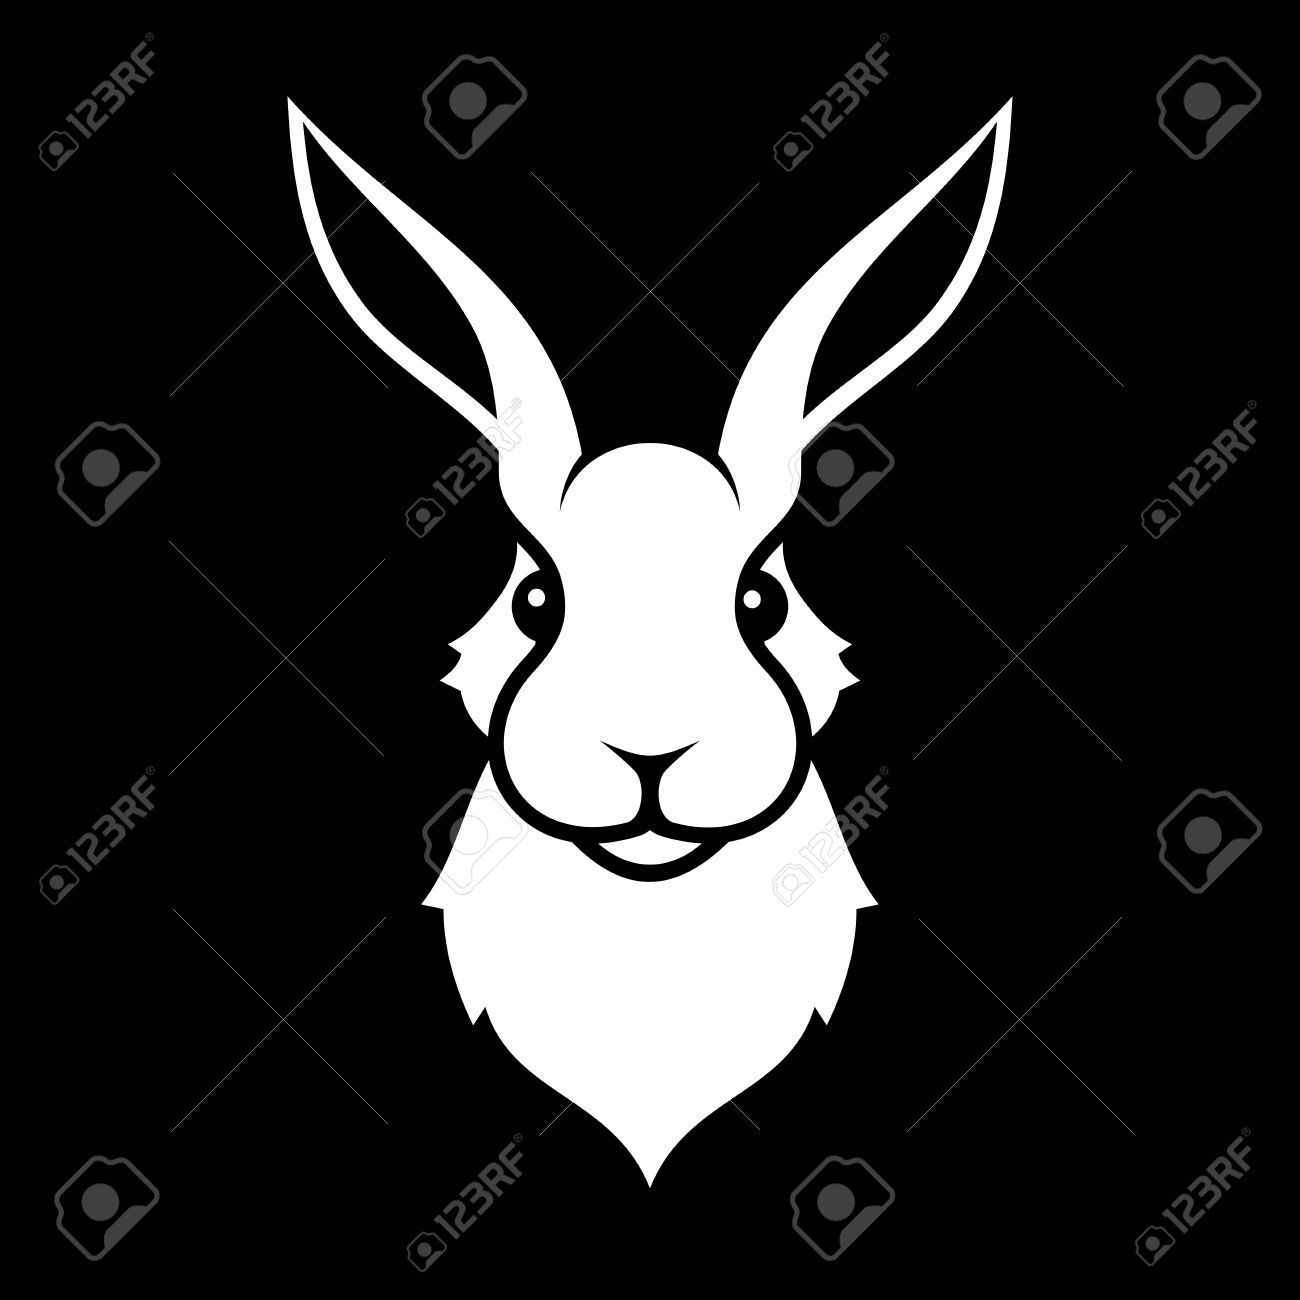 hight resolution of image result for free rabbit clipart black and white